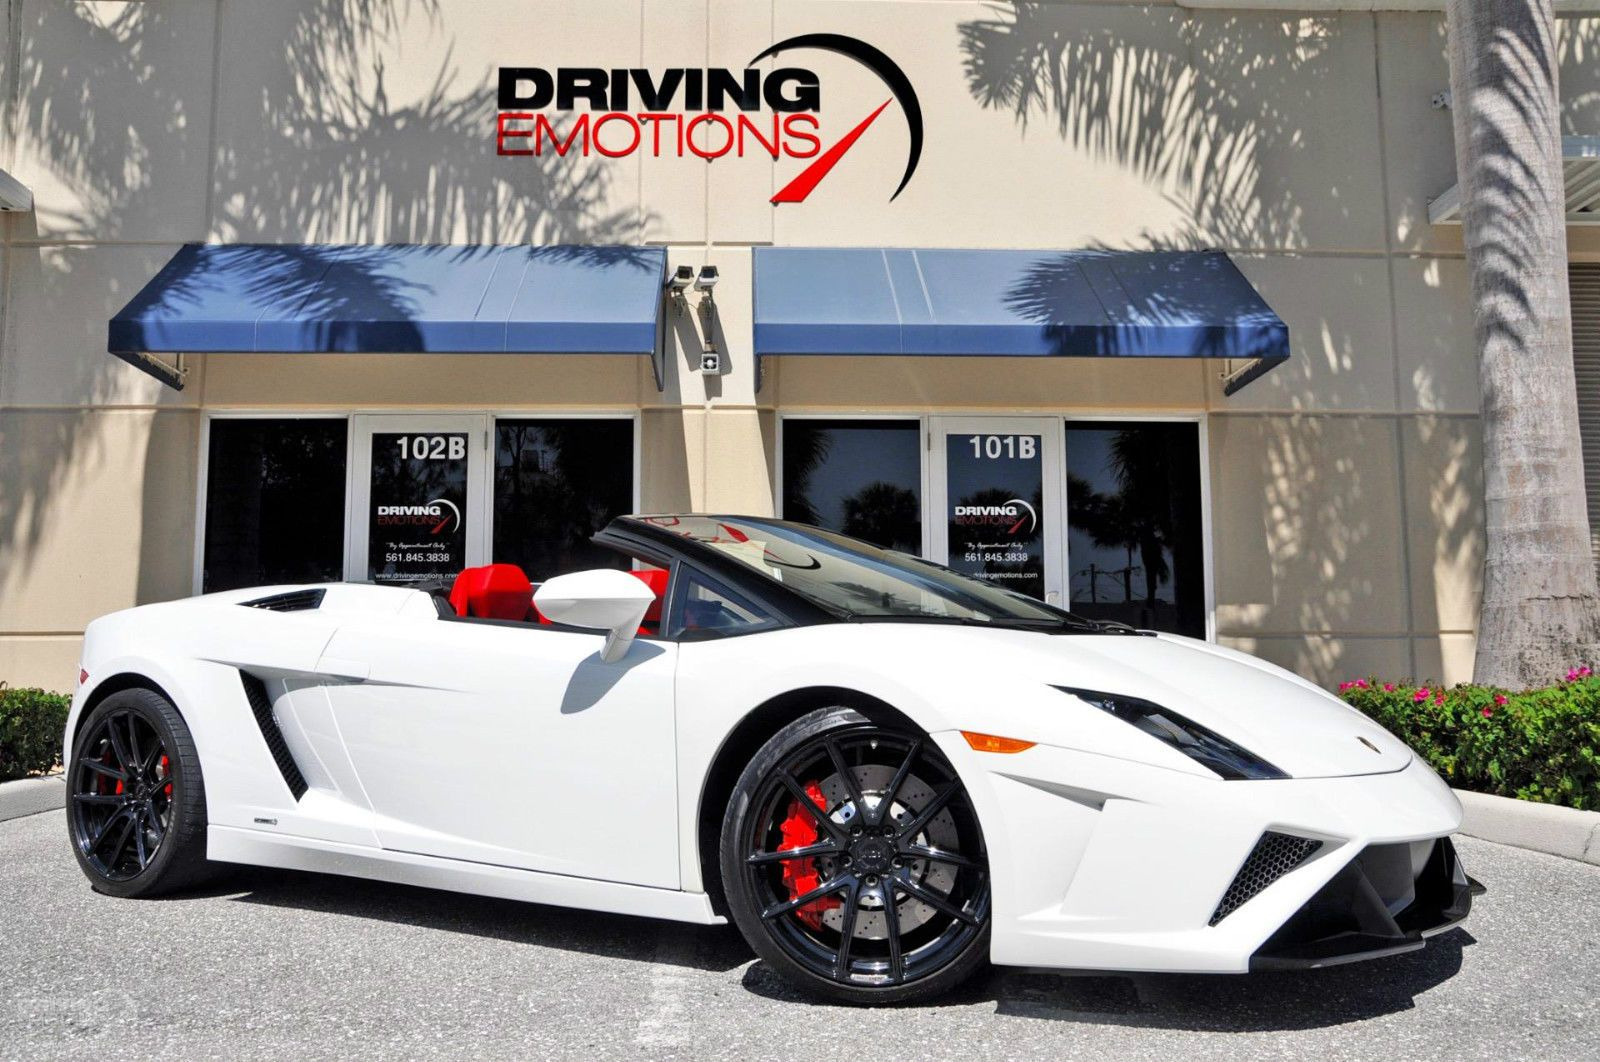 Used 2013 Lamborghini Gallardo Spyder LP Spyder Stock # 5972 In Lake Park,  FL At Driving Emotions, FLu0027s Premier Pre Owned Luxury Car Dealership.